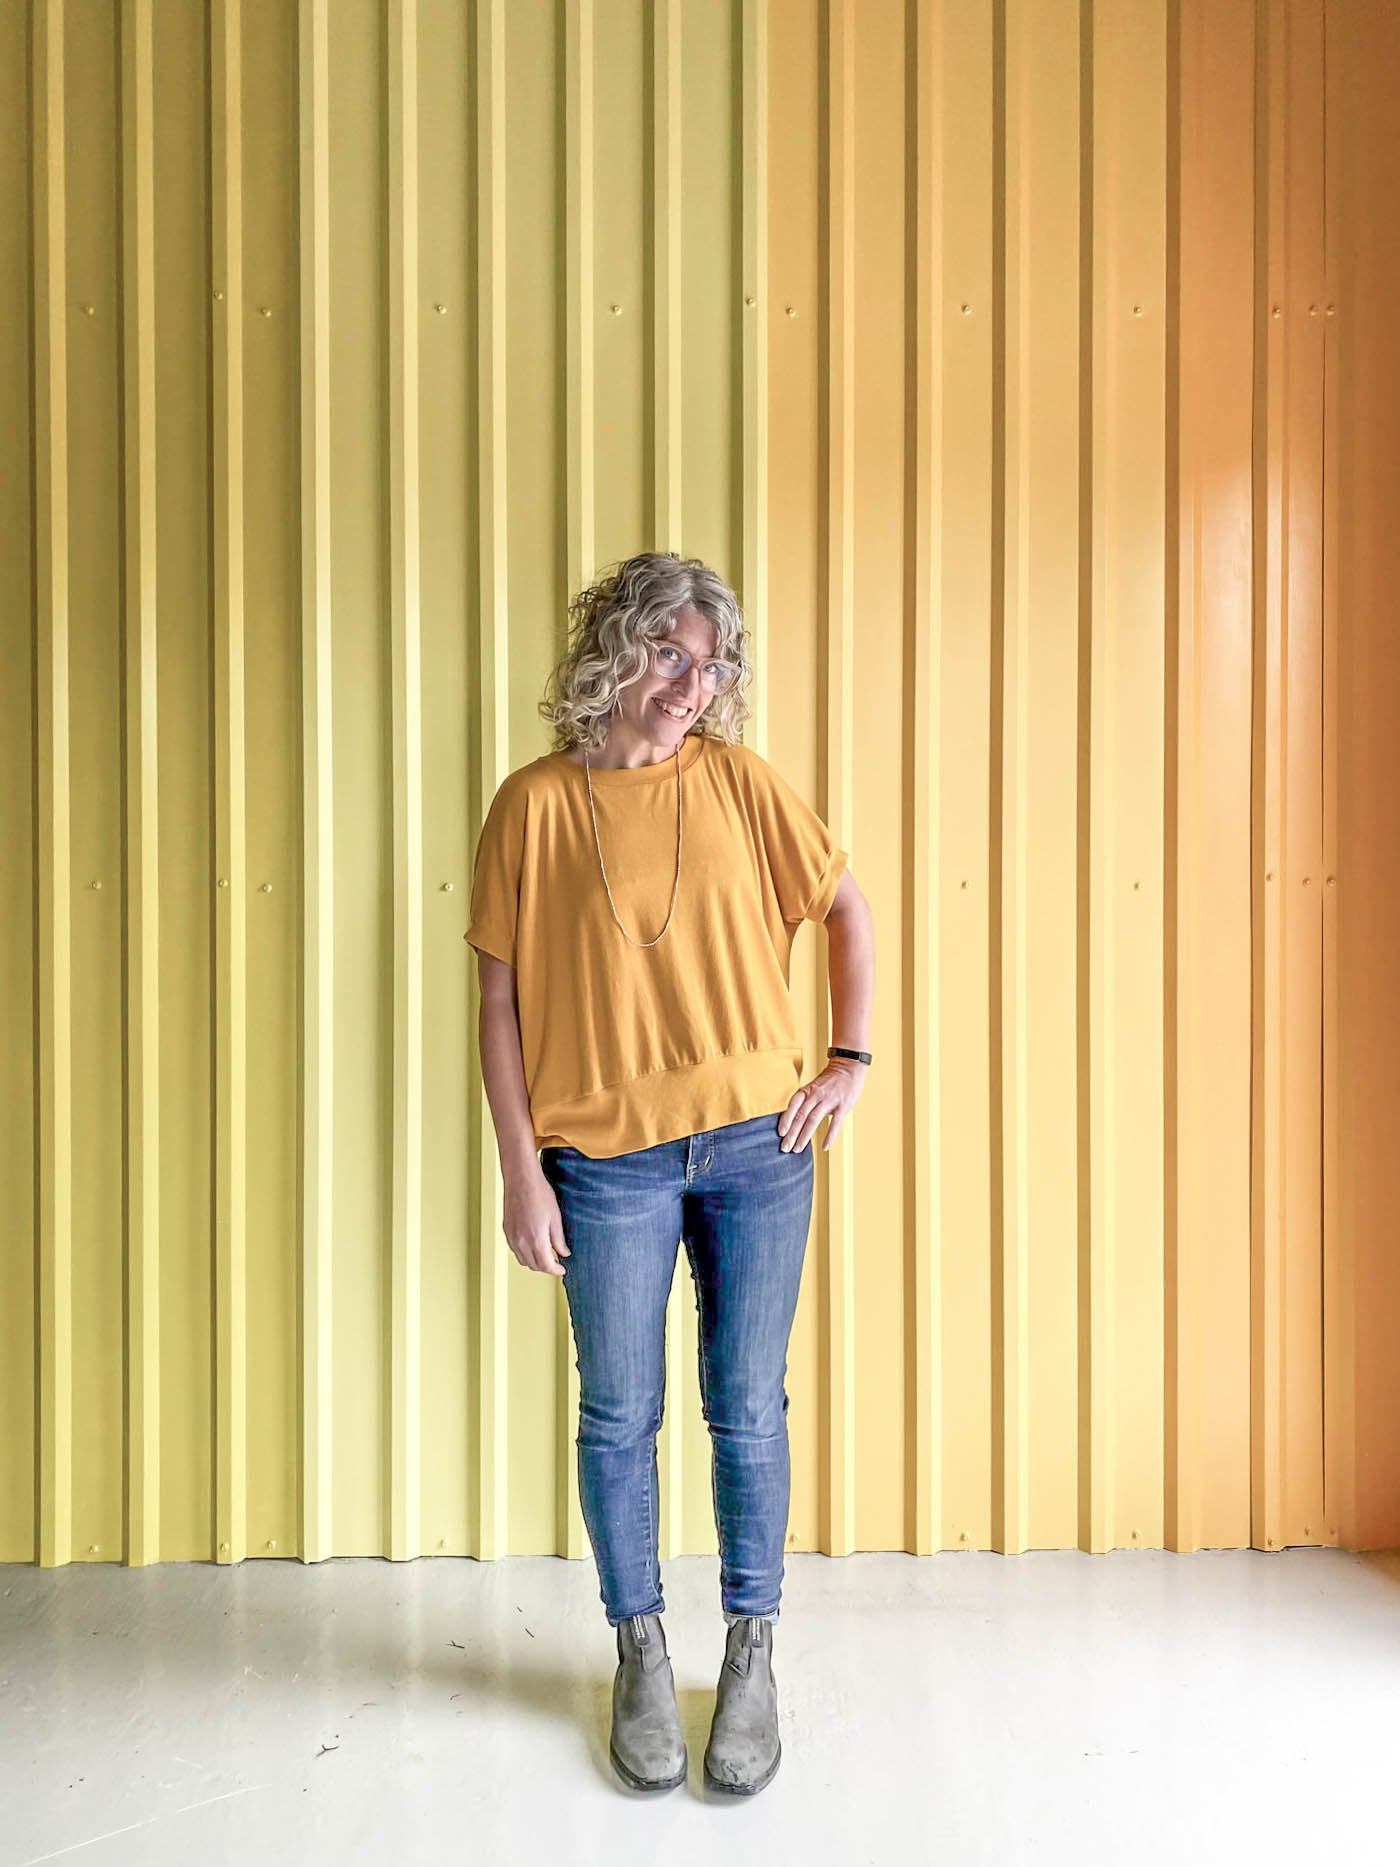 Jaime wearing a golden yellow Hosta tee, jeans and black boots, standing in front of a corrugated yellow ombre wall.